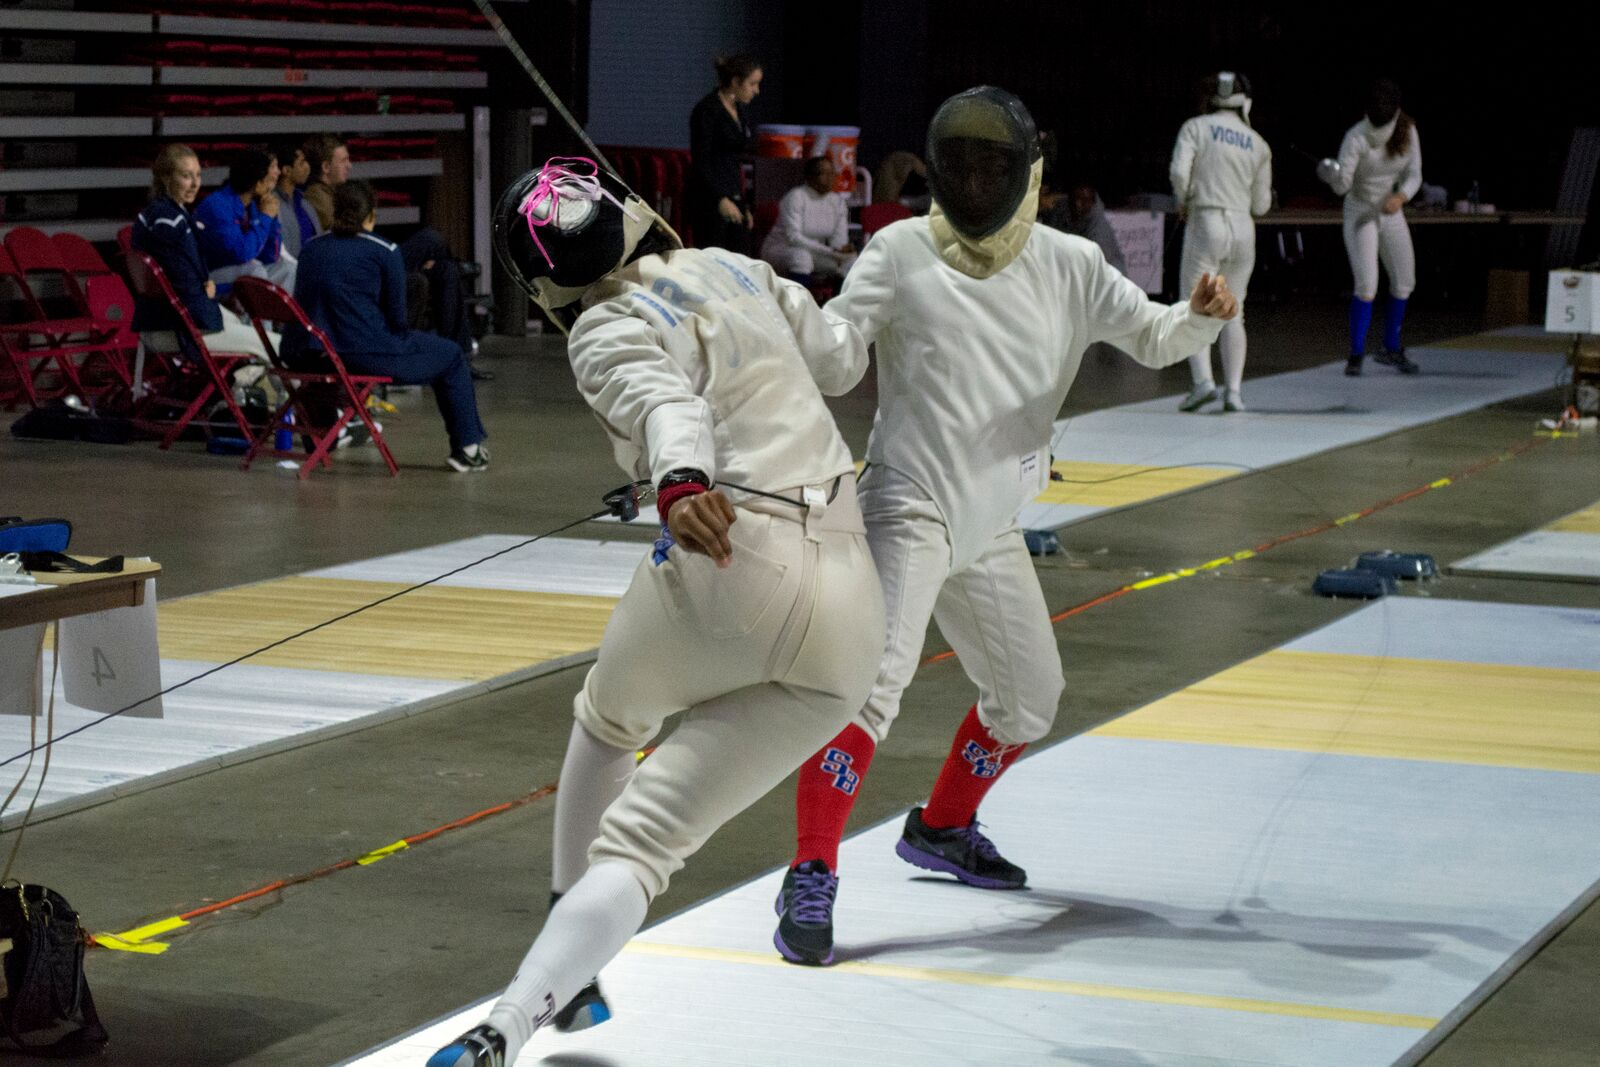 Stony Brook sophomore épée fencer Brianna Bawayan (above, right) defends herself in a bout against Temple University's Safaa Ibrahim at the 2015 Temple Collegiate Open. Ibrahim would go on to place 2nd in the Women's Épée division. CHRISTOPHER CAMERON/THE STATESMAN